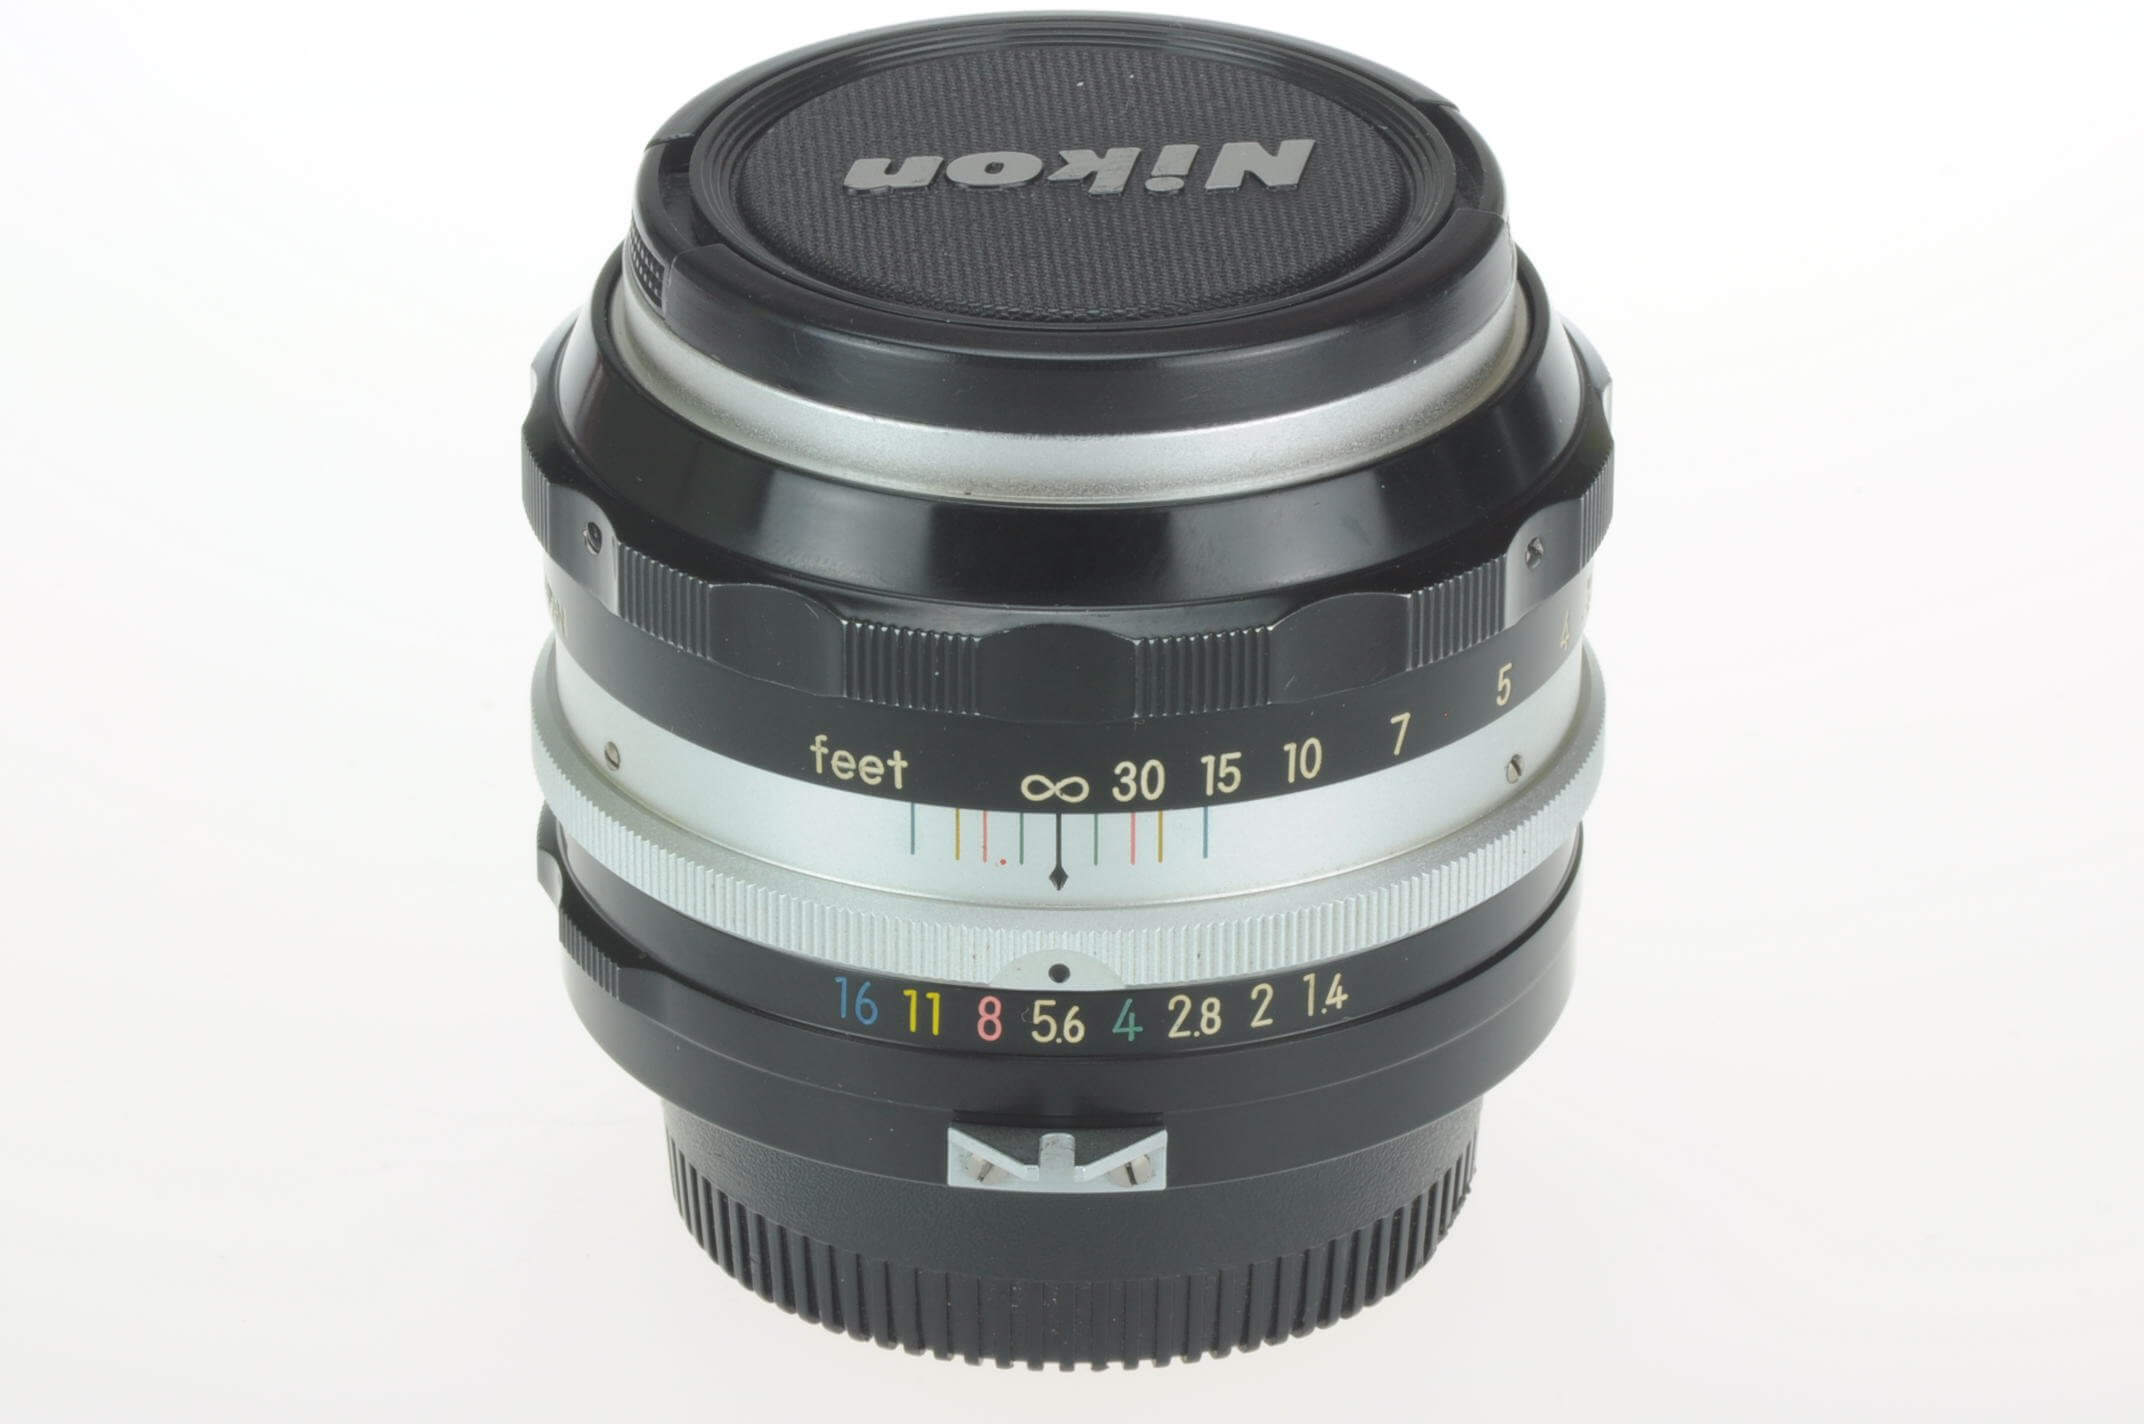 Nikon 50mm f1.4 Nikkor pre-AI lens, gorgeous condition!